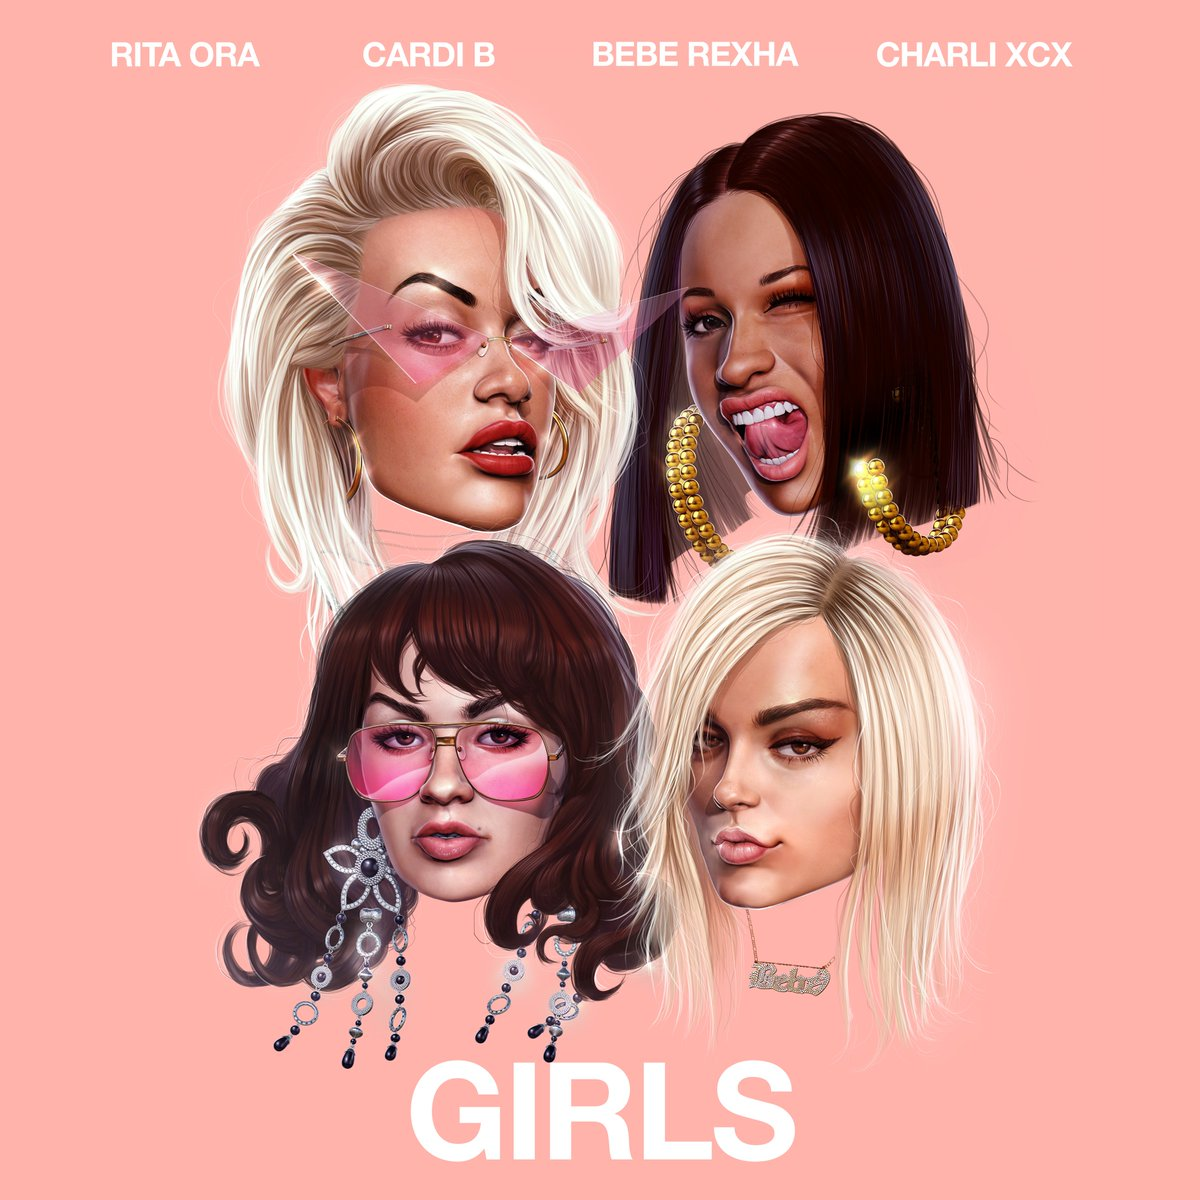 GIRLS – COMING FRIDAY ???? @iamcardib @BebeRexha @charli_xcx https://t.co/ZNVEf2DDBg